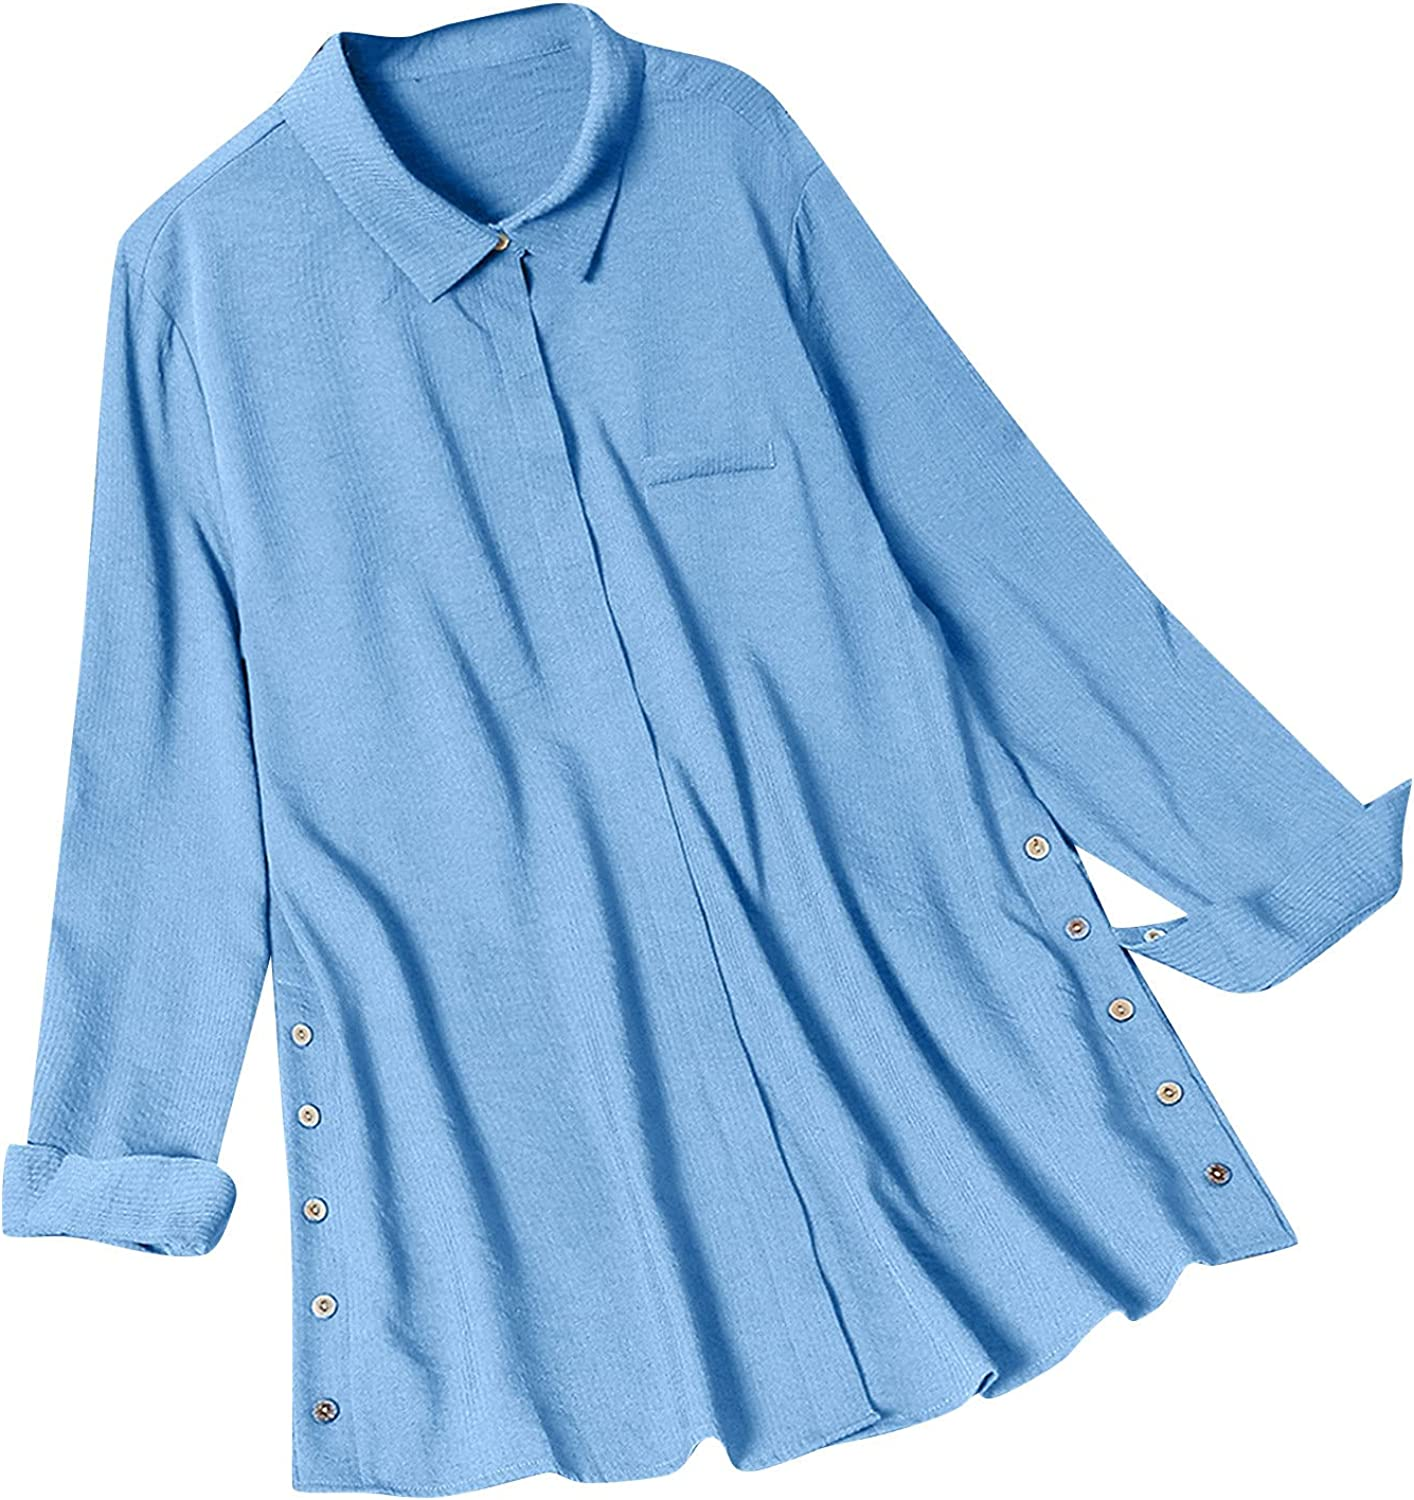 Women Button Solid Shirt Tops Lapel Ruffle Flowy Shirts Fall Work Daily Shirt Blouses with Pockets